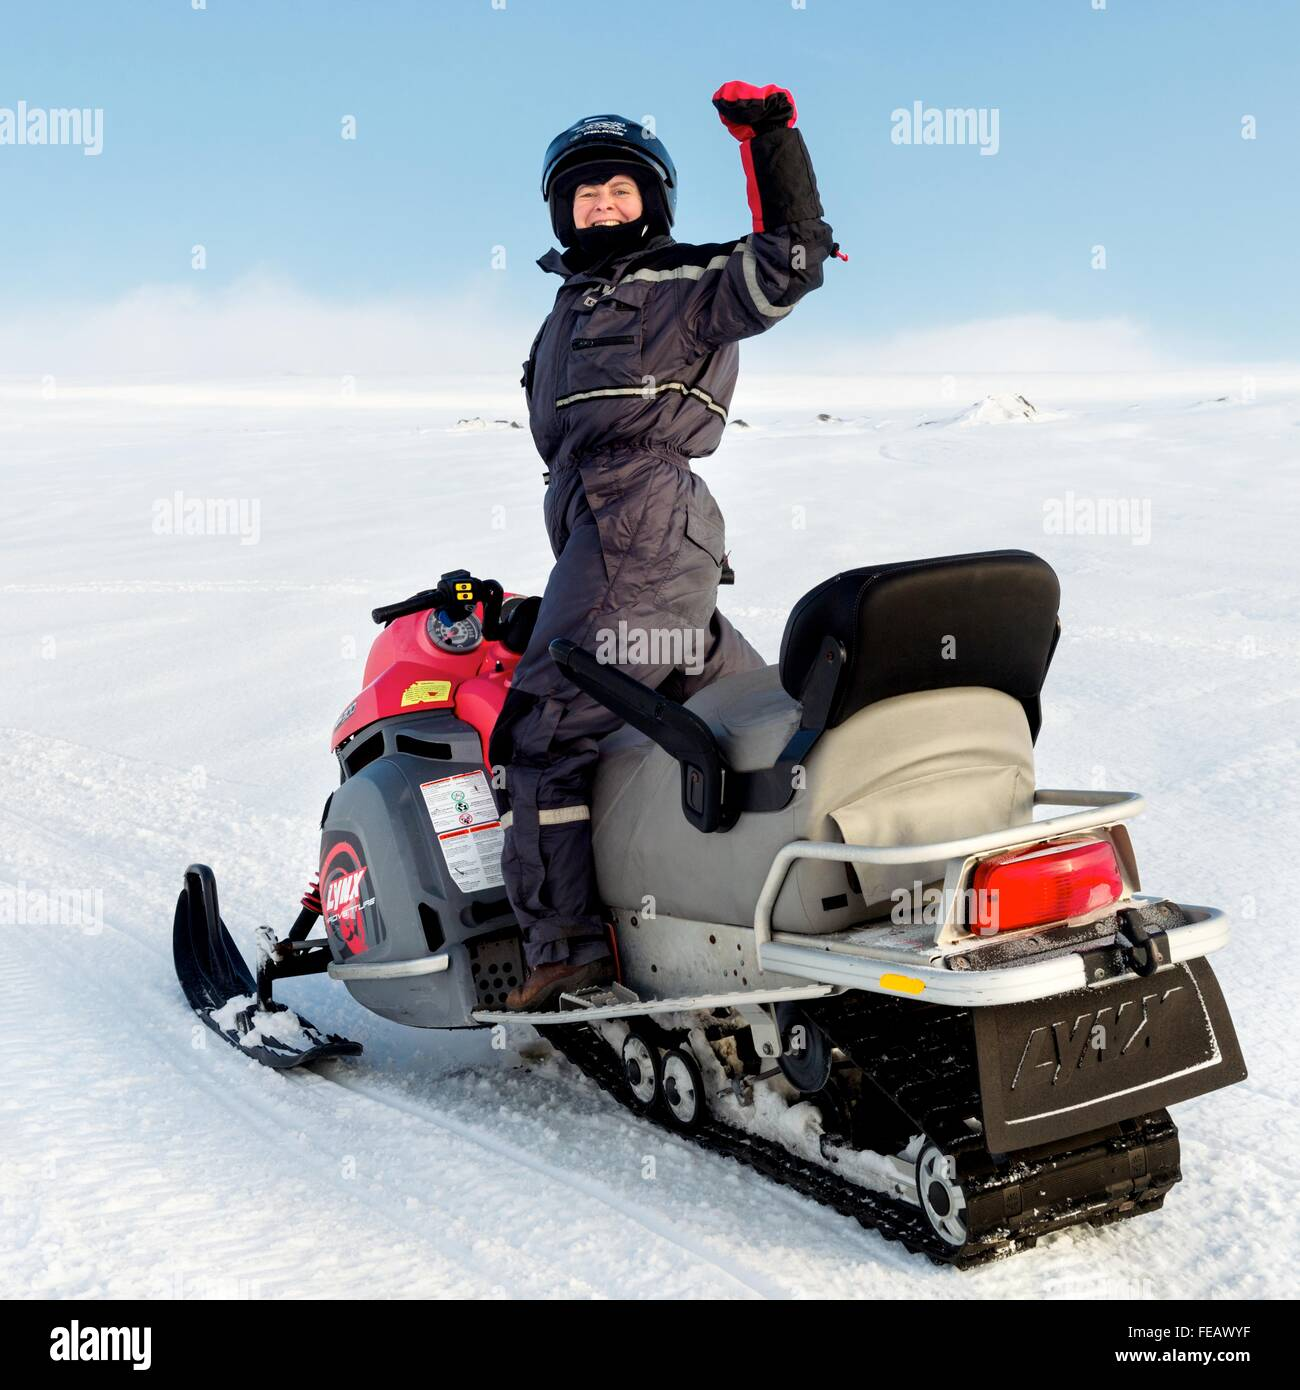 Woman on snowmobile on glacier in Iceland. - Stock Image